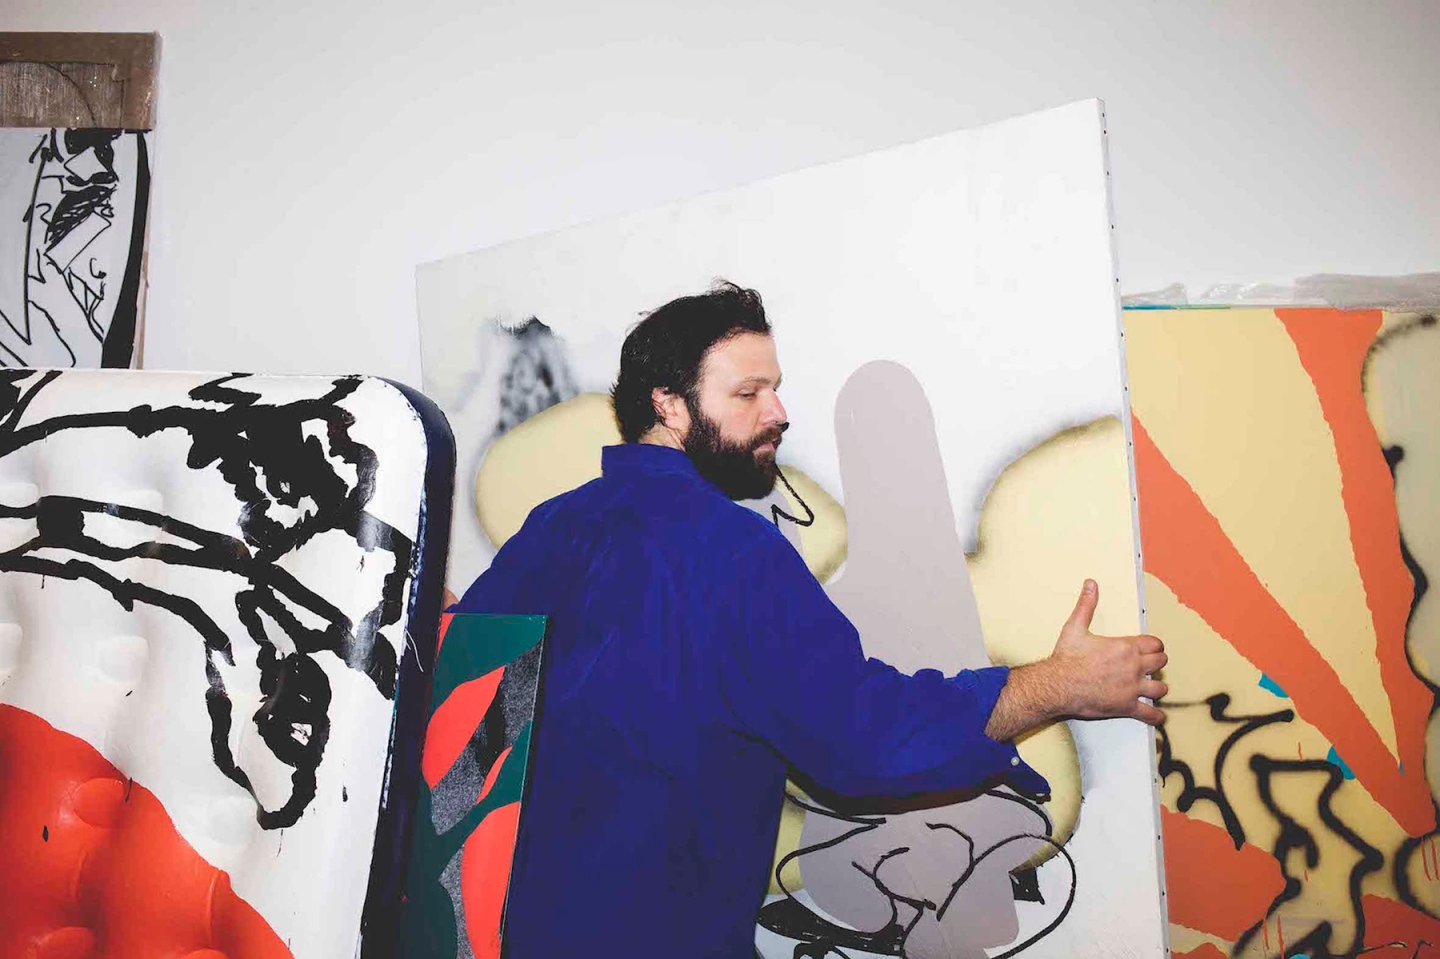 the-fourth-walls-art-exhibition-review-antwan-horfee-sorry-bro-ruttkowski68-gallery-cologne-germany13